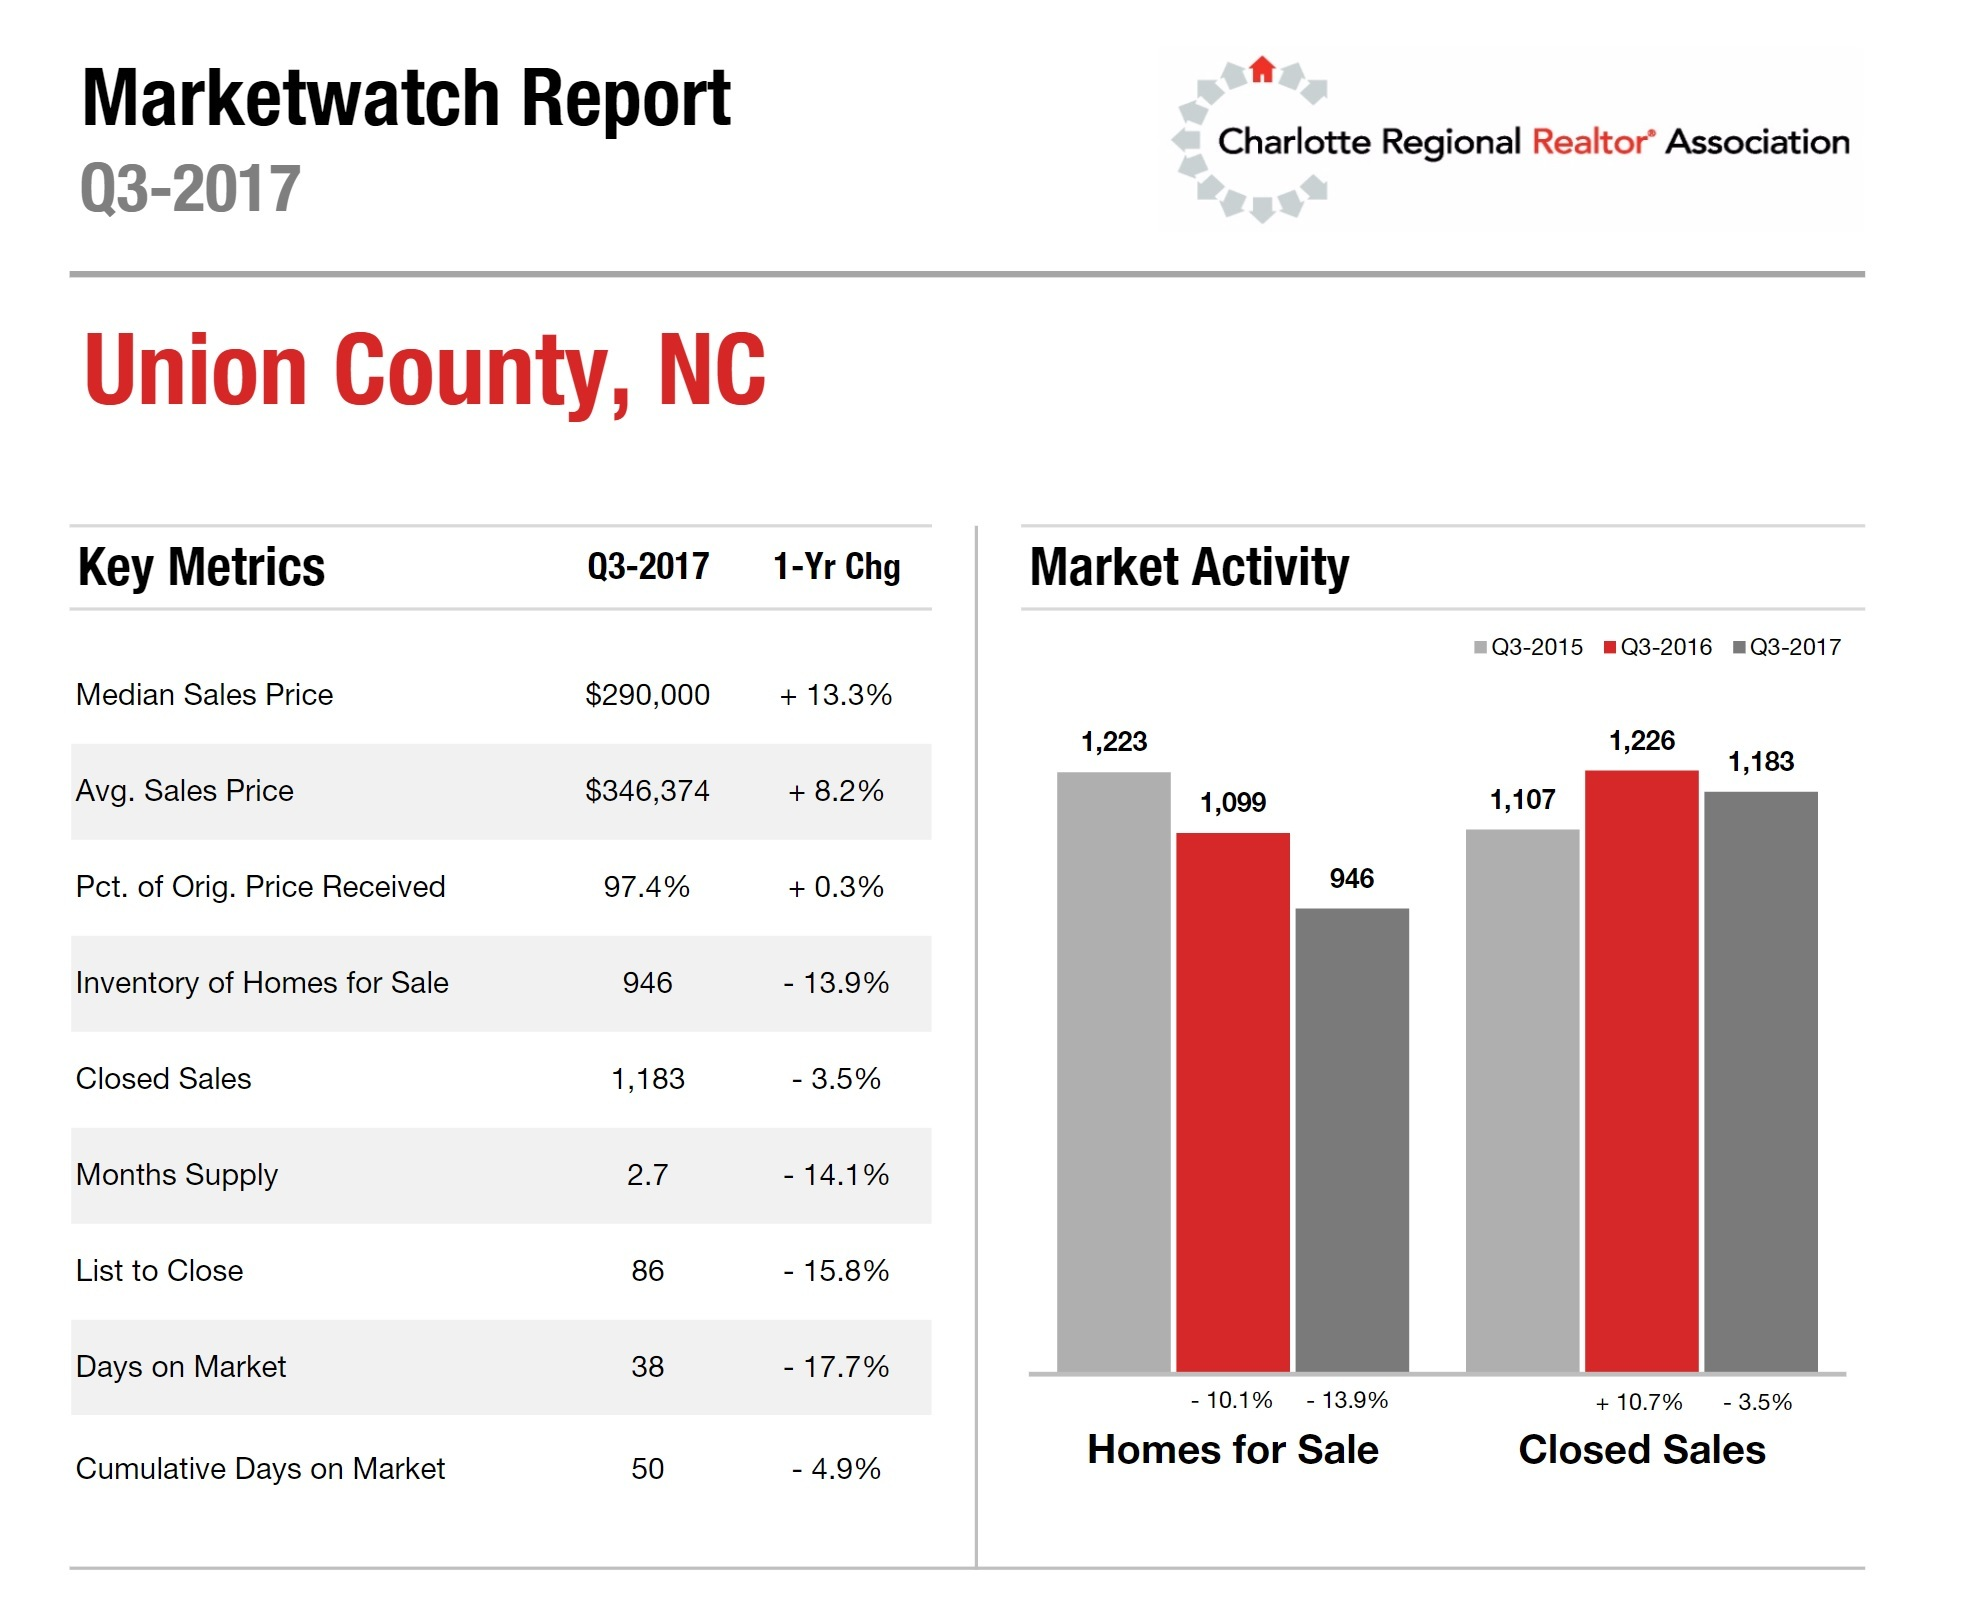 Union County, NC Housing Market Update: 3rd Quarter 2017